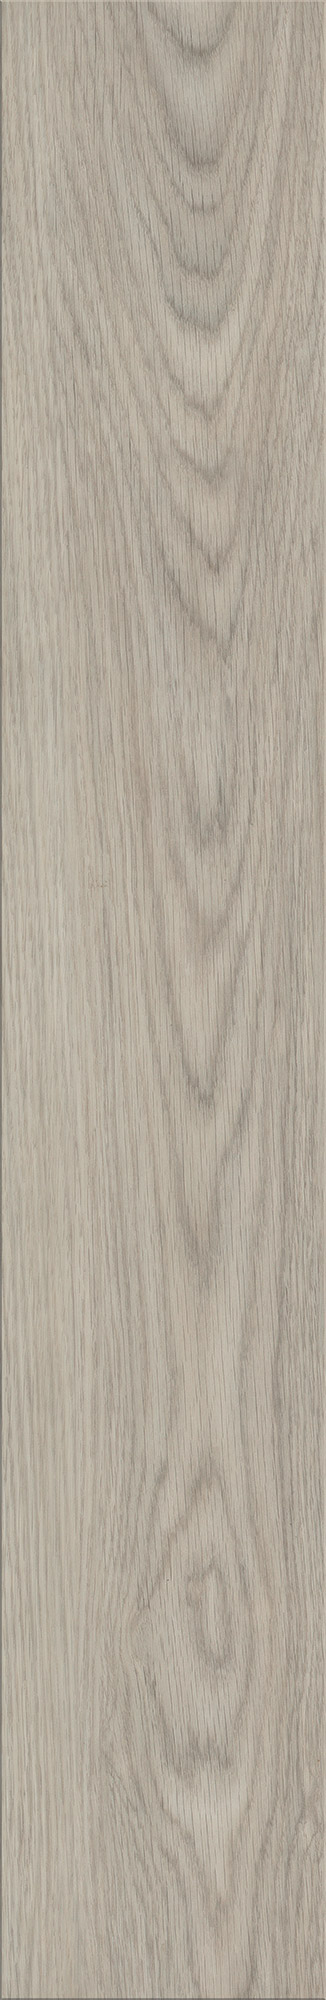 Lakeside Ash Click Vinyl Flooring from Luvanto - Style and Texture large view